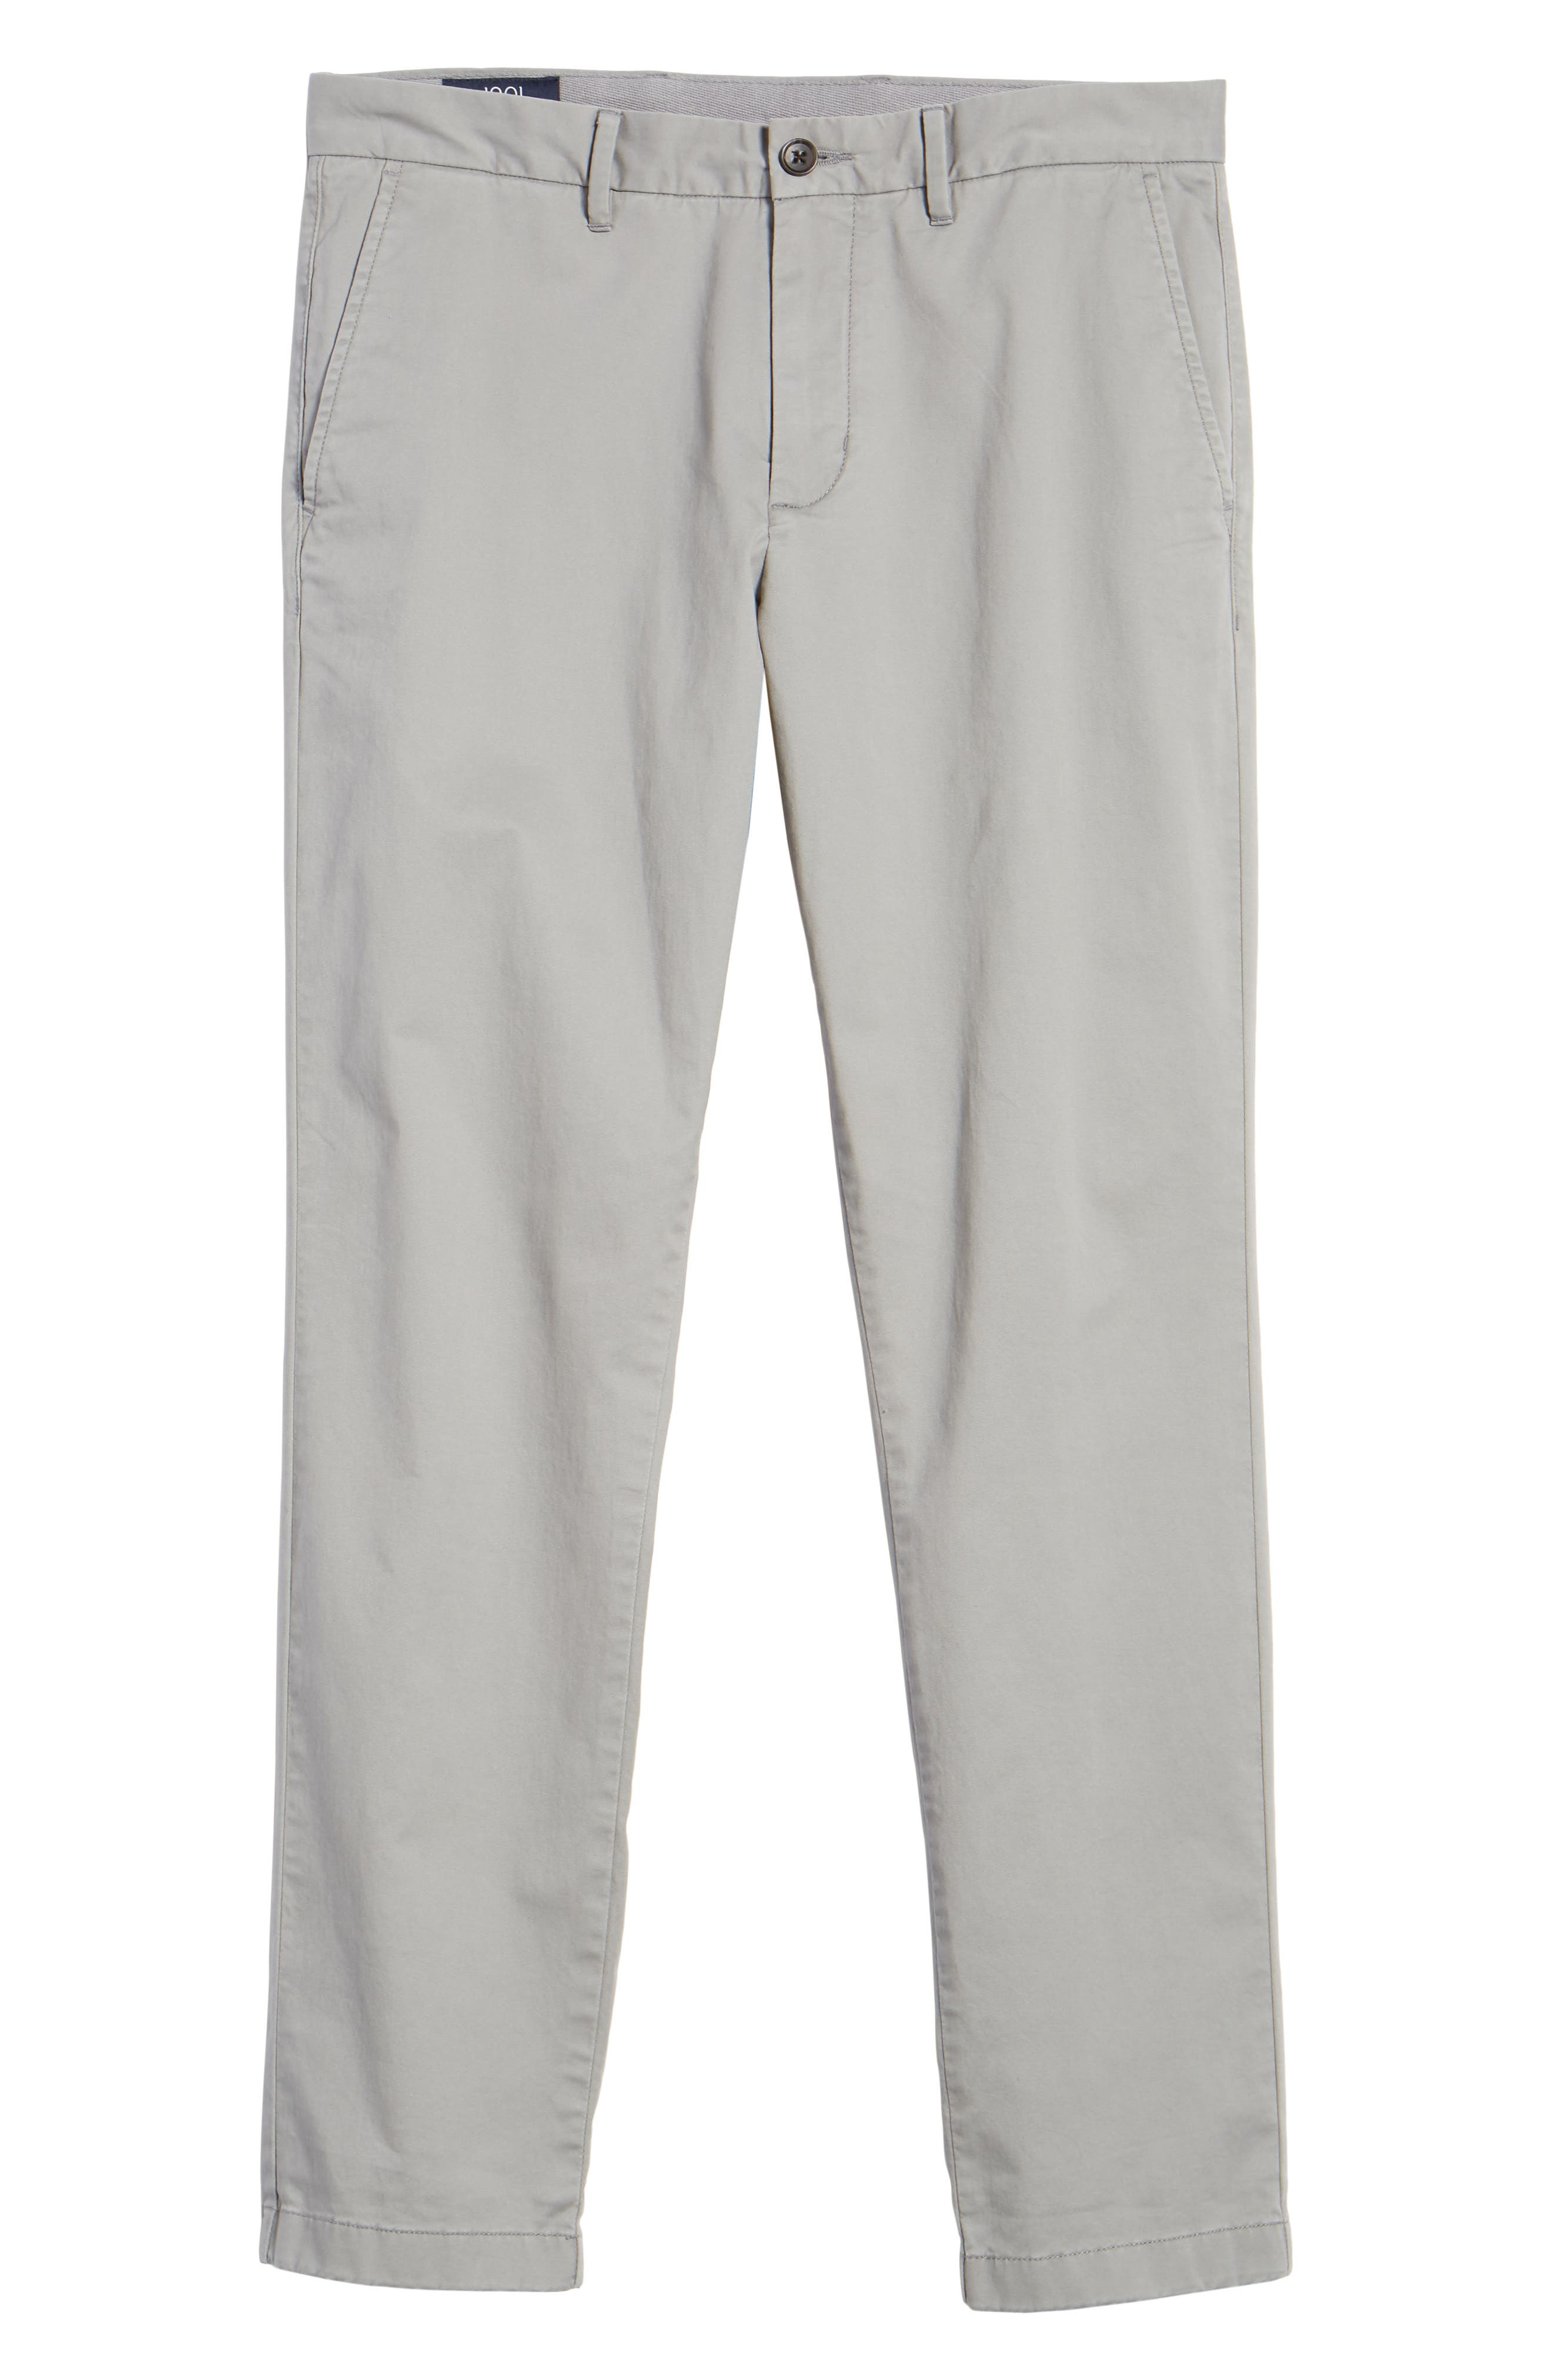 Fremont Relaxed Slim Fit Chinos,                             Alternate thumbnail 36, color,